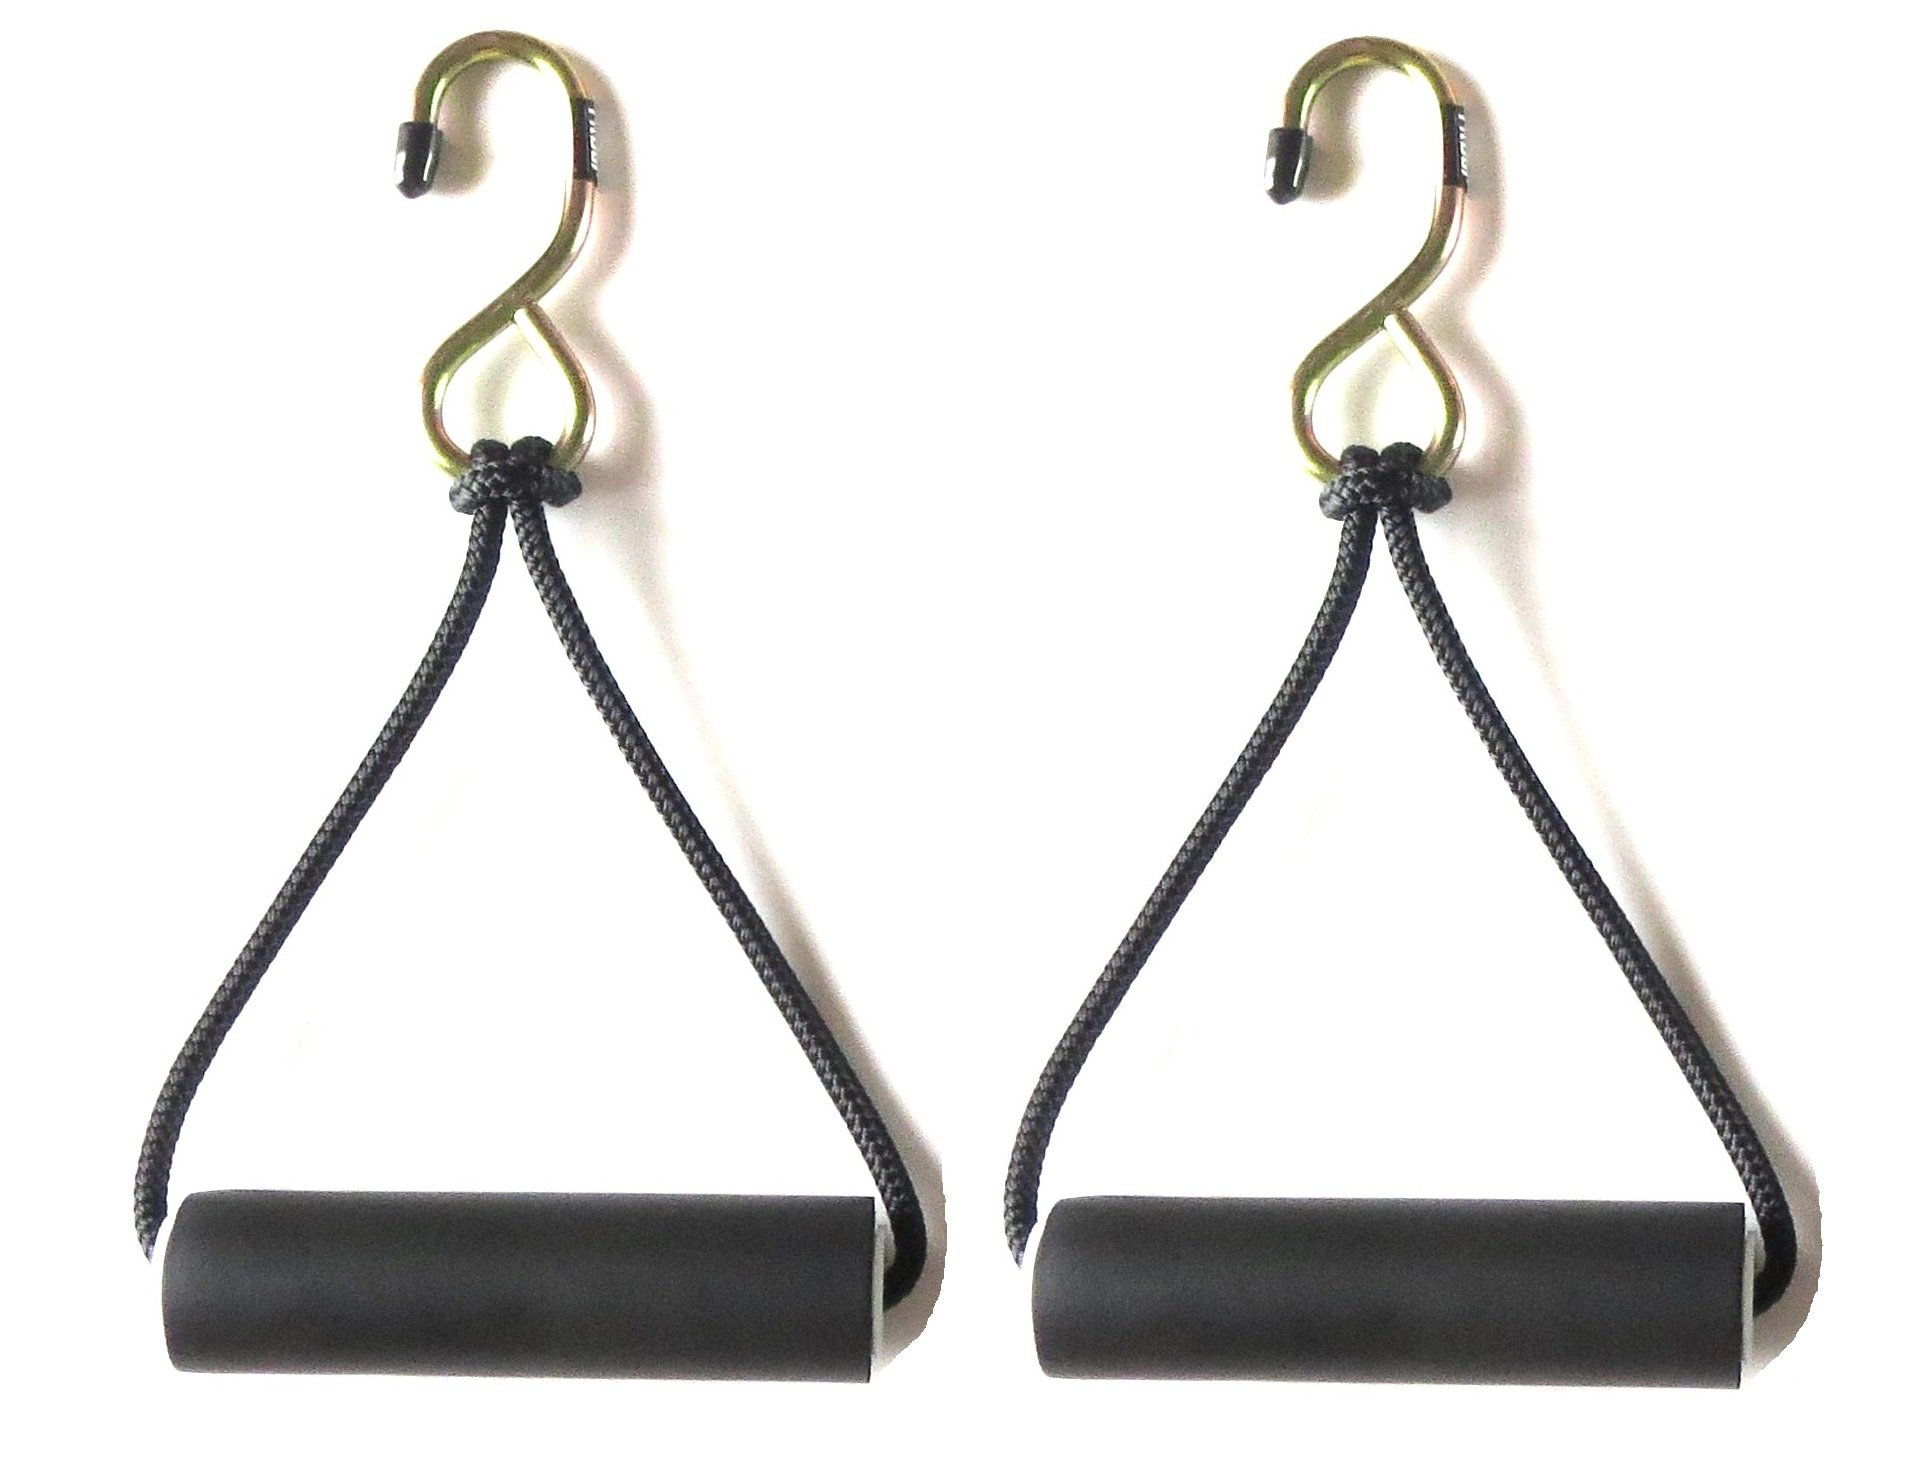 Heavy Duty Pull Up Bar | Chin Up Bar Handles for Neutral Grip and Twist Motion Pull Ups